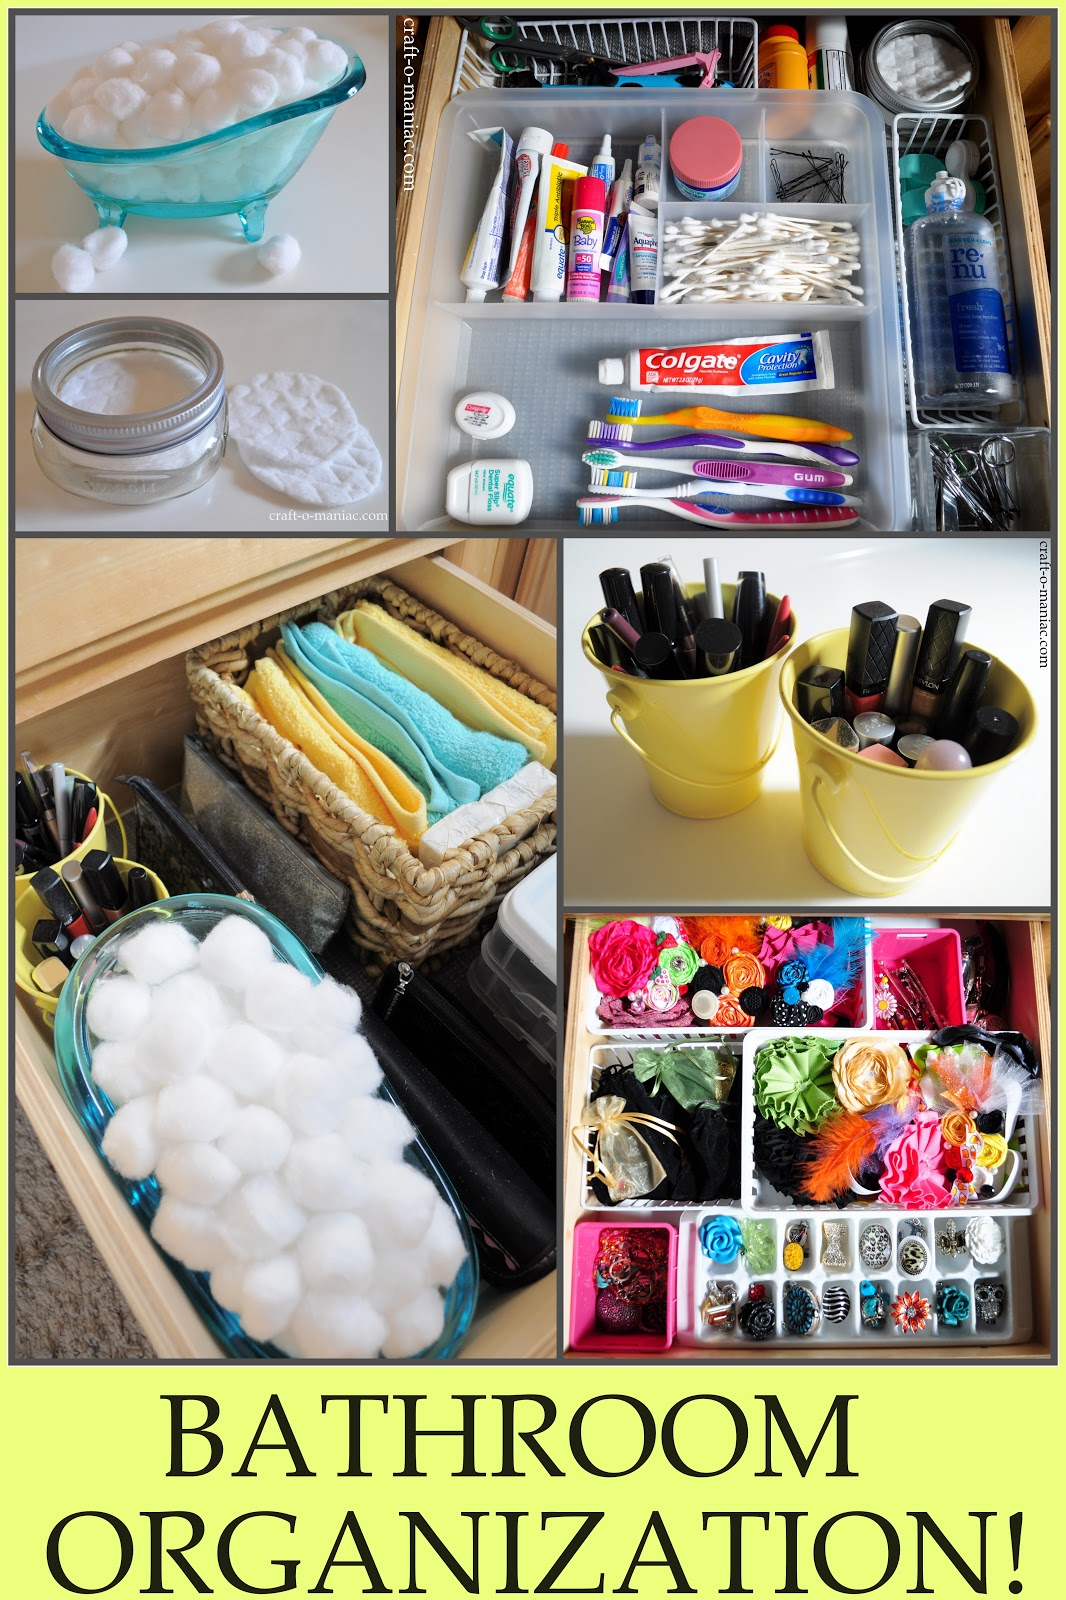 Bathroom Organization Ideas Plus a $50.00 dollar gift card ...